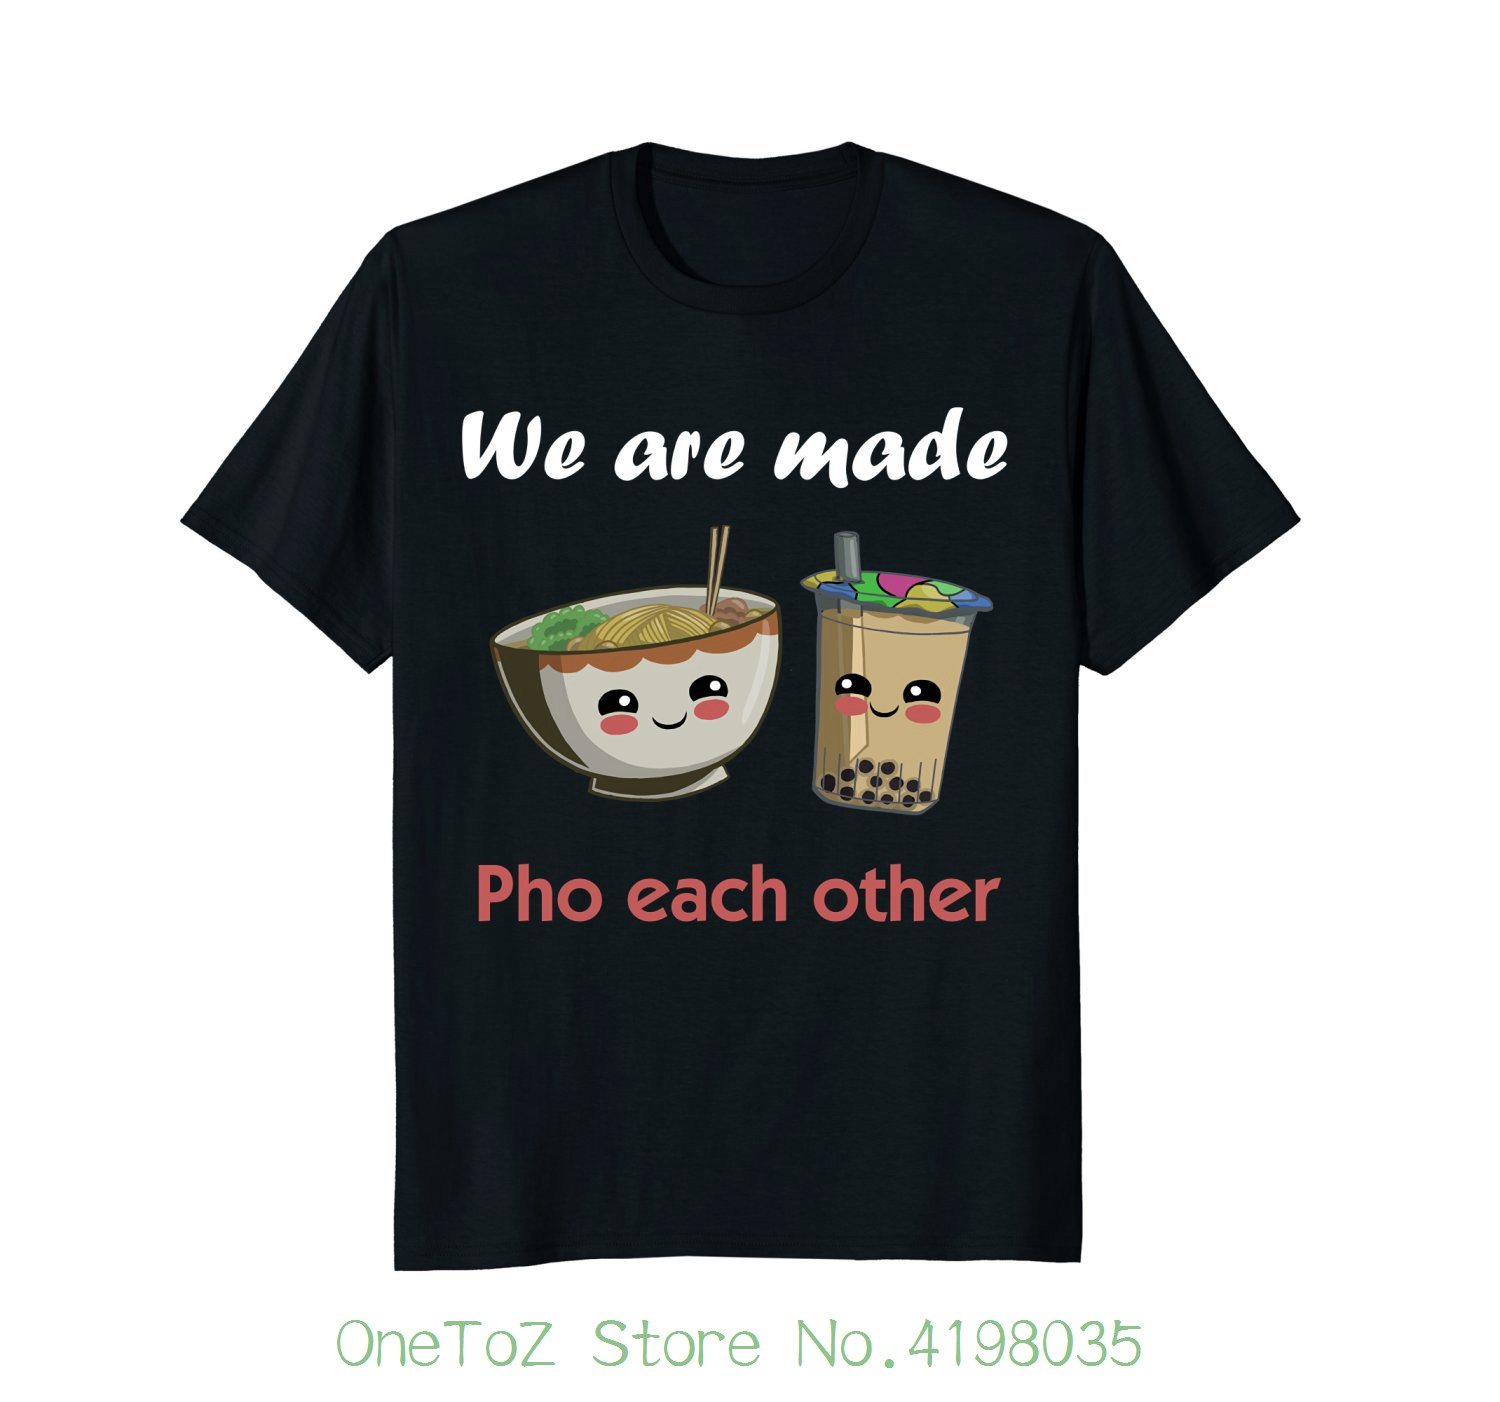 Pho Shirt Boba Tshirt Funny Vietnamese Pho Soup Teeshirt Clothing Tops Hipster Fashion(China)